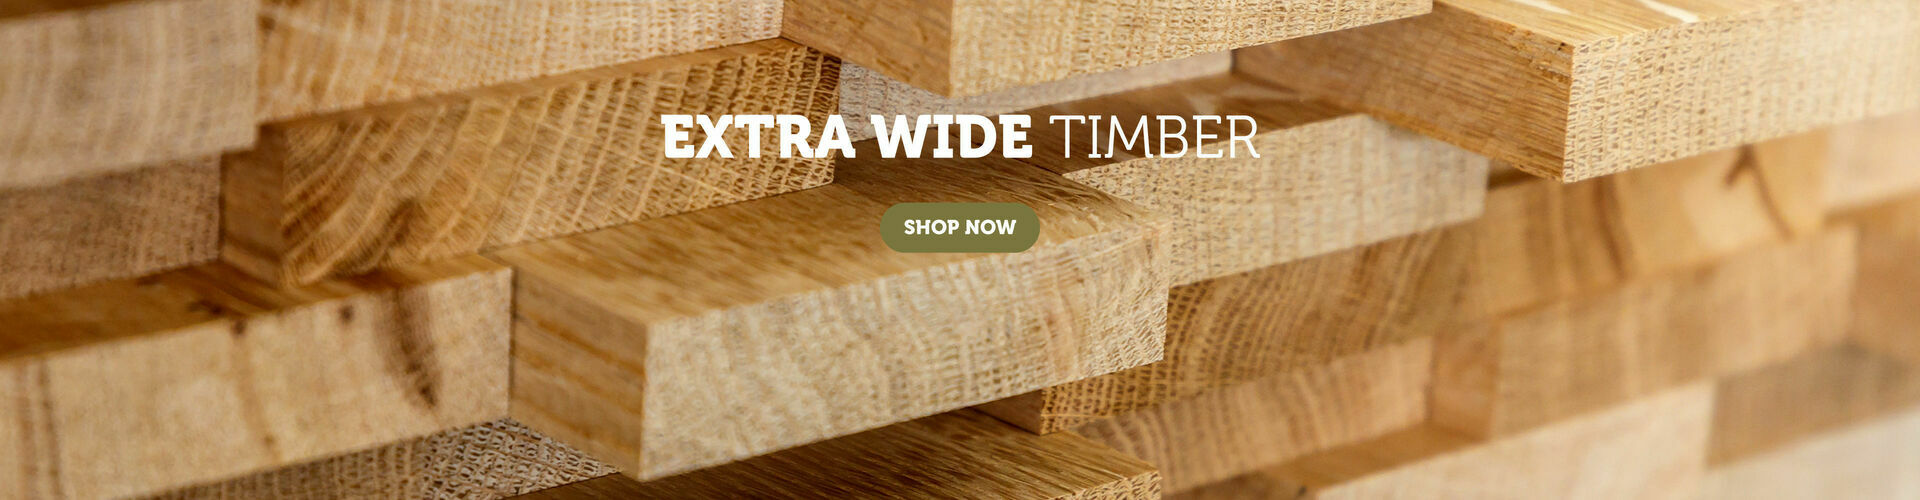 Extra Wide Timber